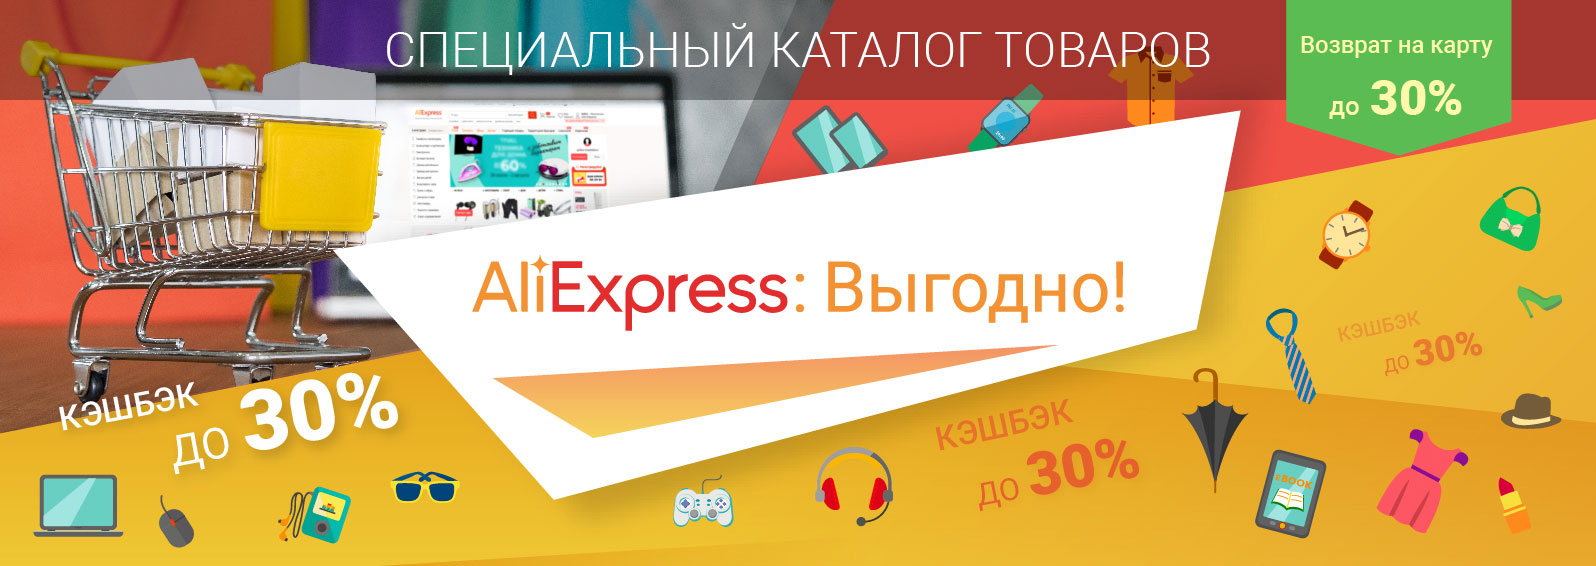 AliExpress: Vygodno!